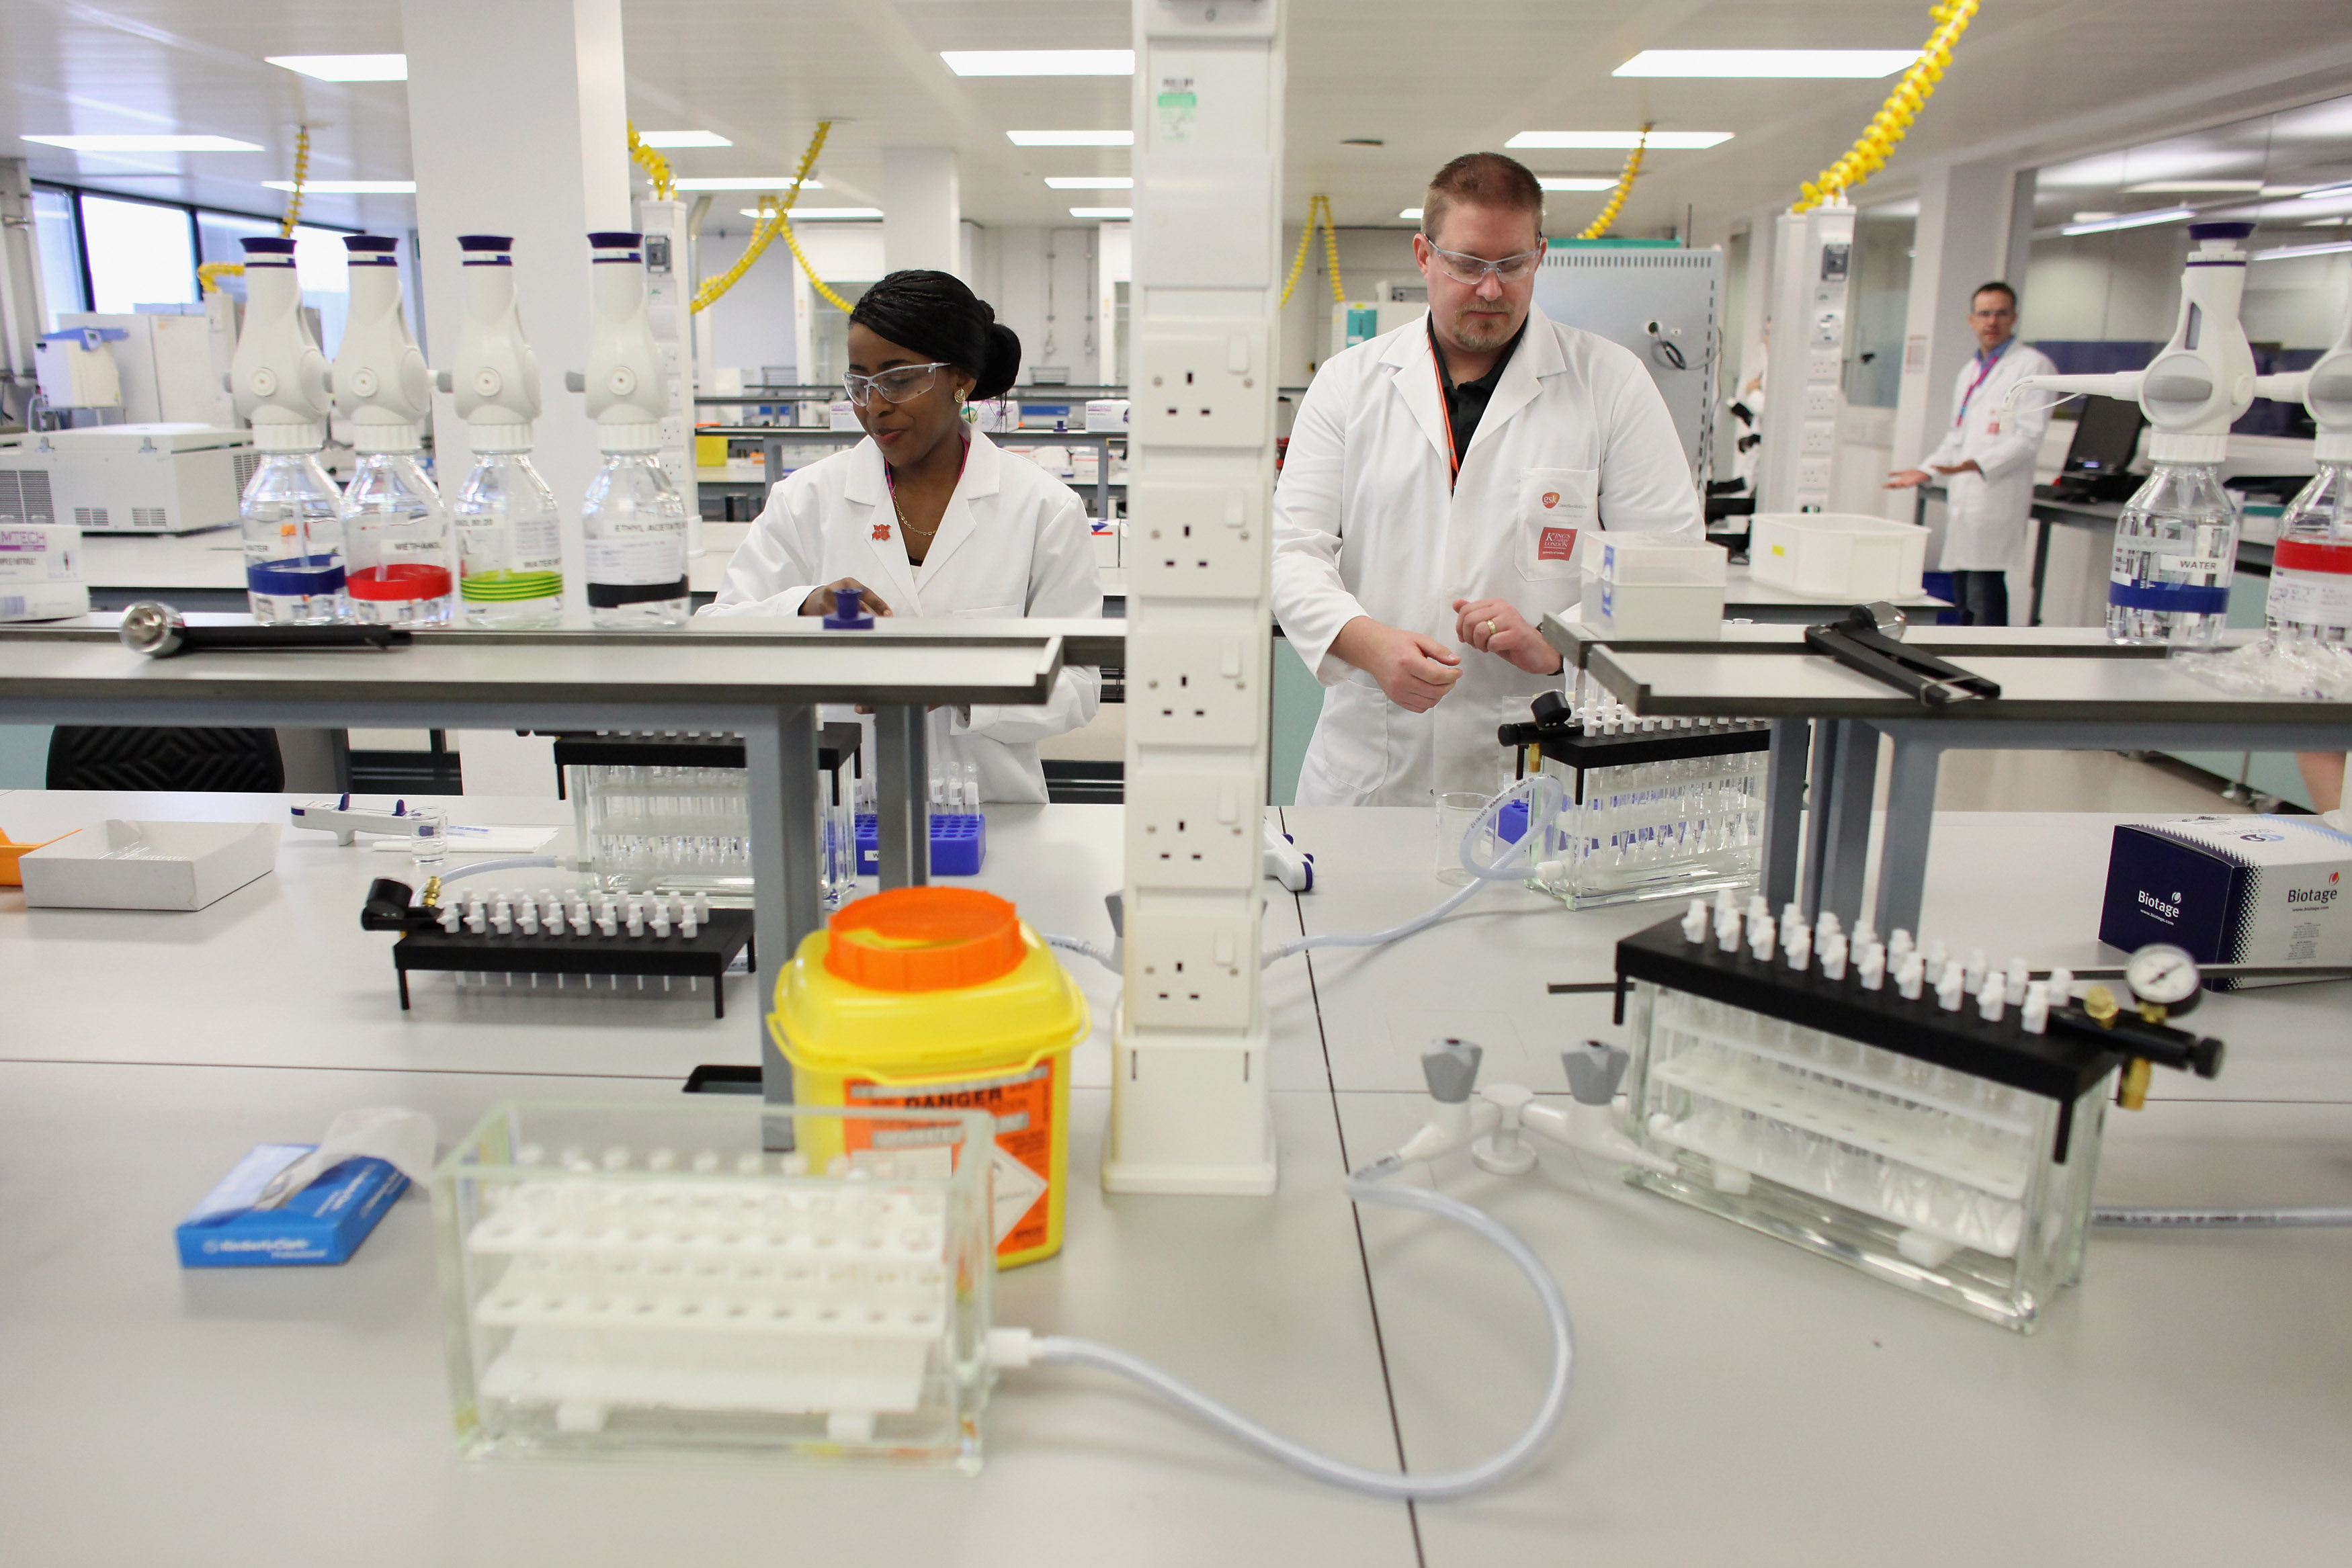 London 2012 Unveil the Anti-Doping Laboratory For The Olympic Games